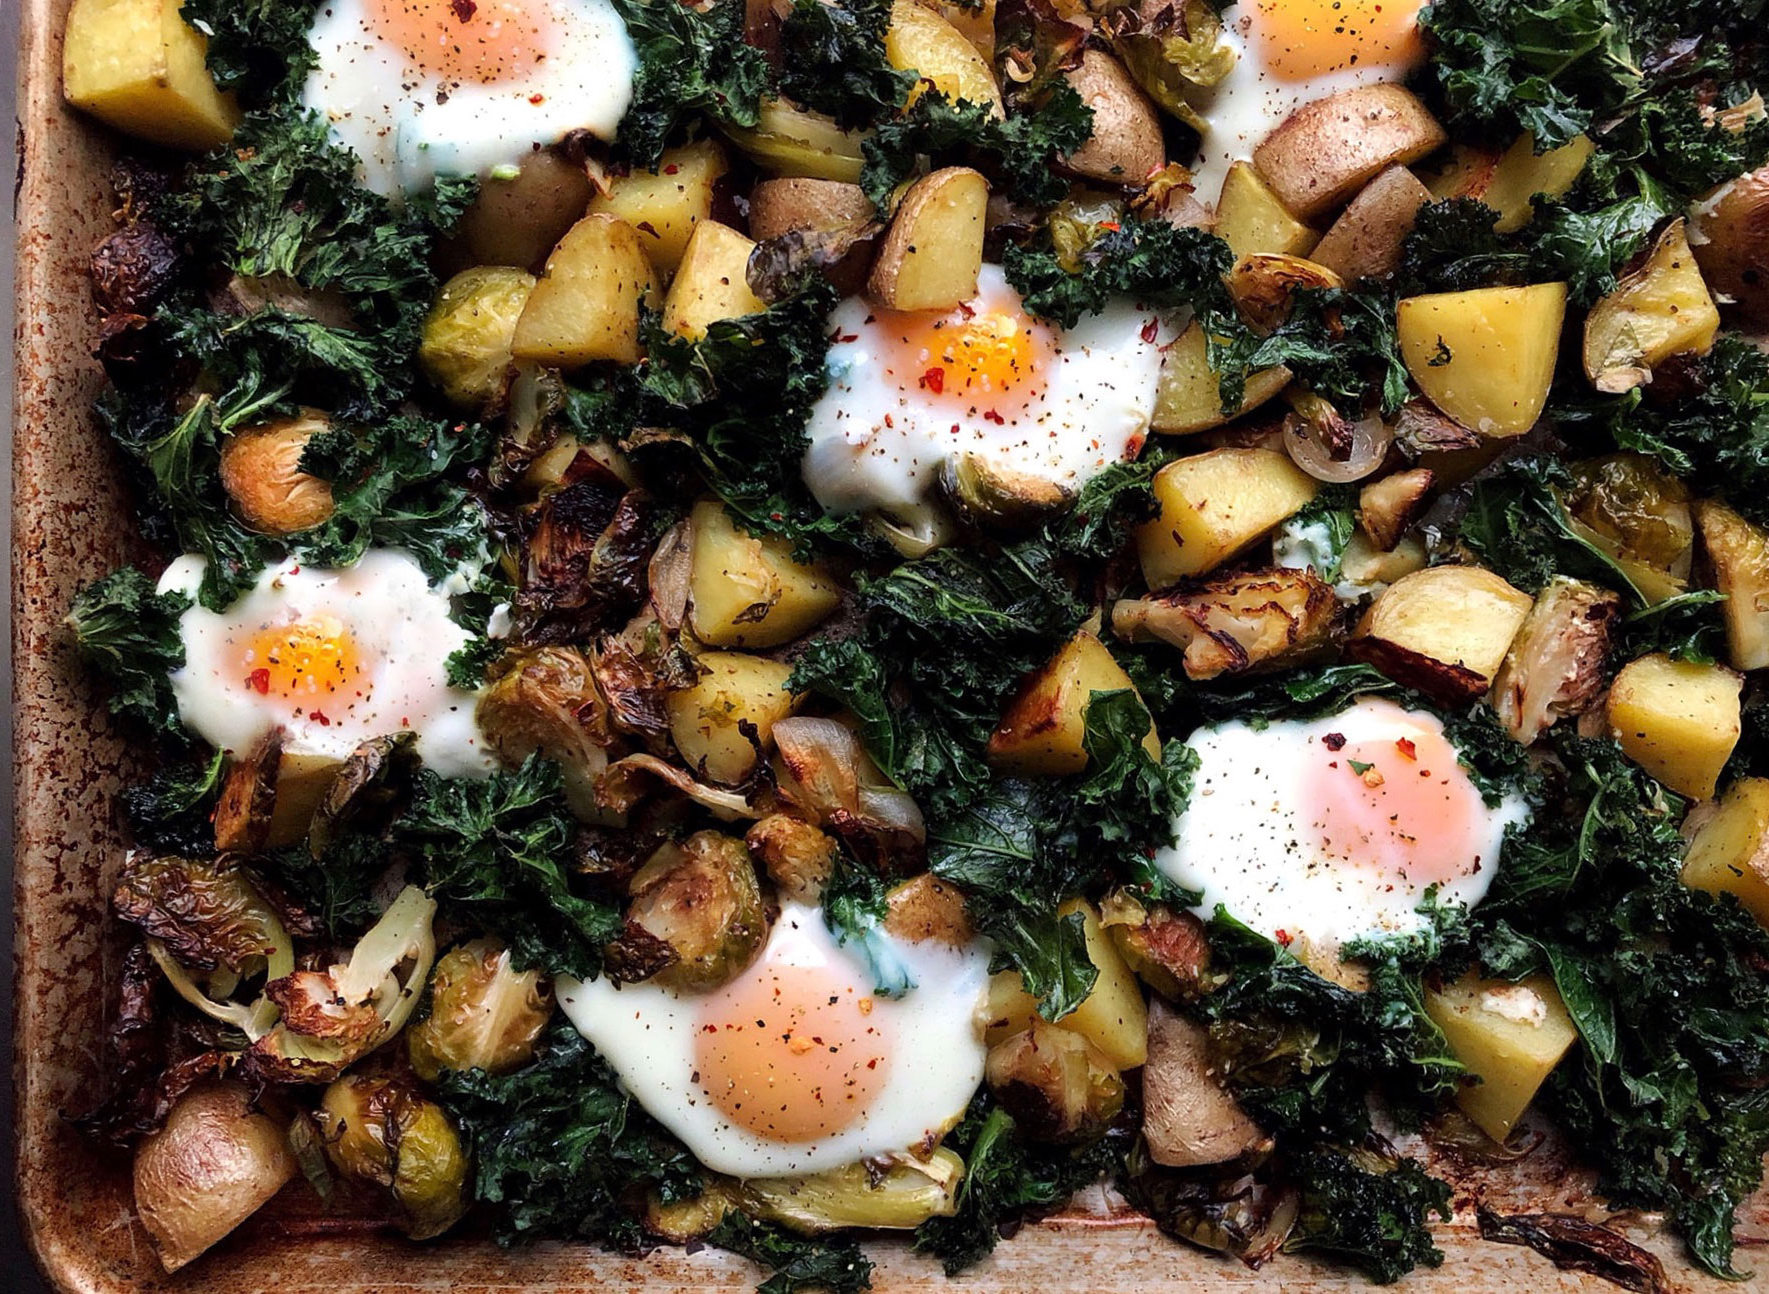 This Roasted Potato and Egg Sheet Pan Brunch Is Perfect for Lazy Weekends